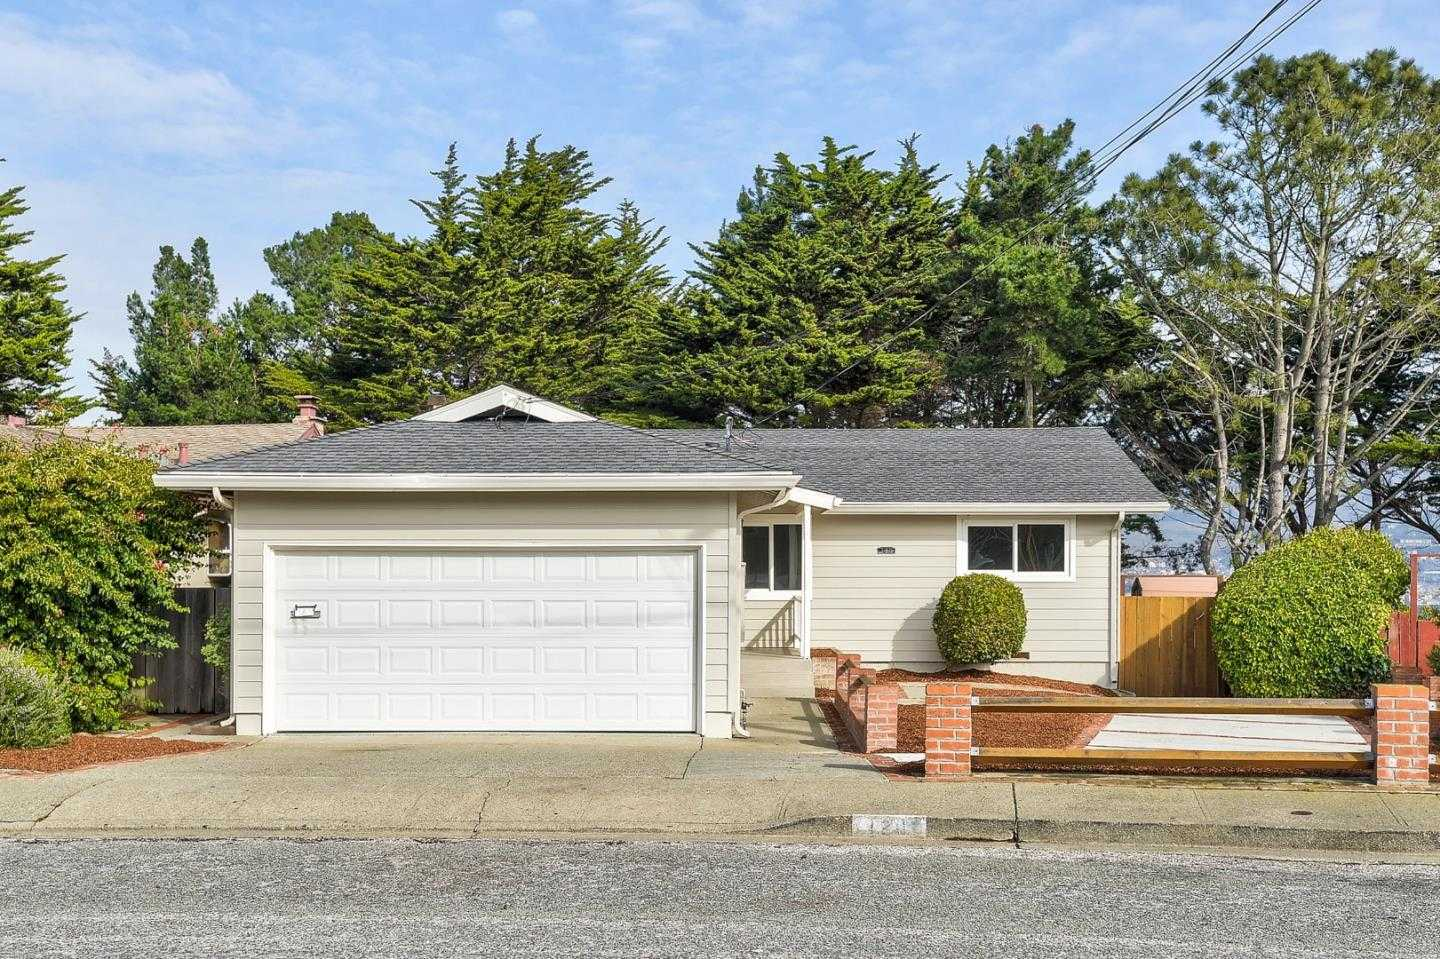 $1,099,000 - 3Br/2Ba -  for Sale in South San Francisco